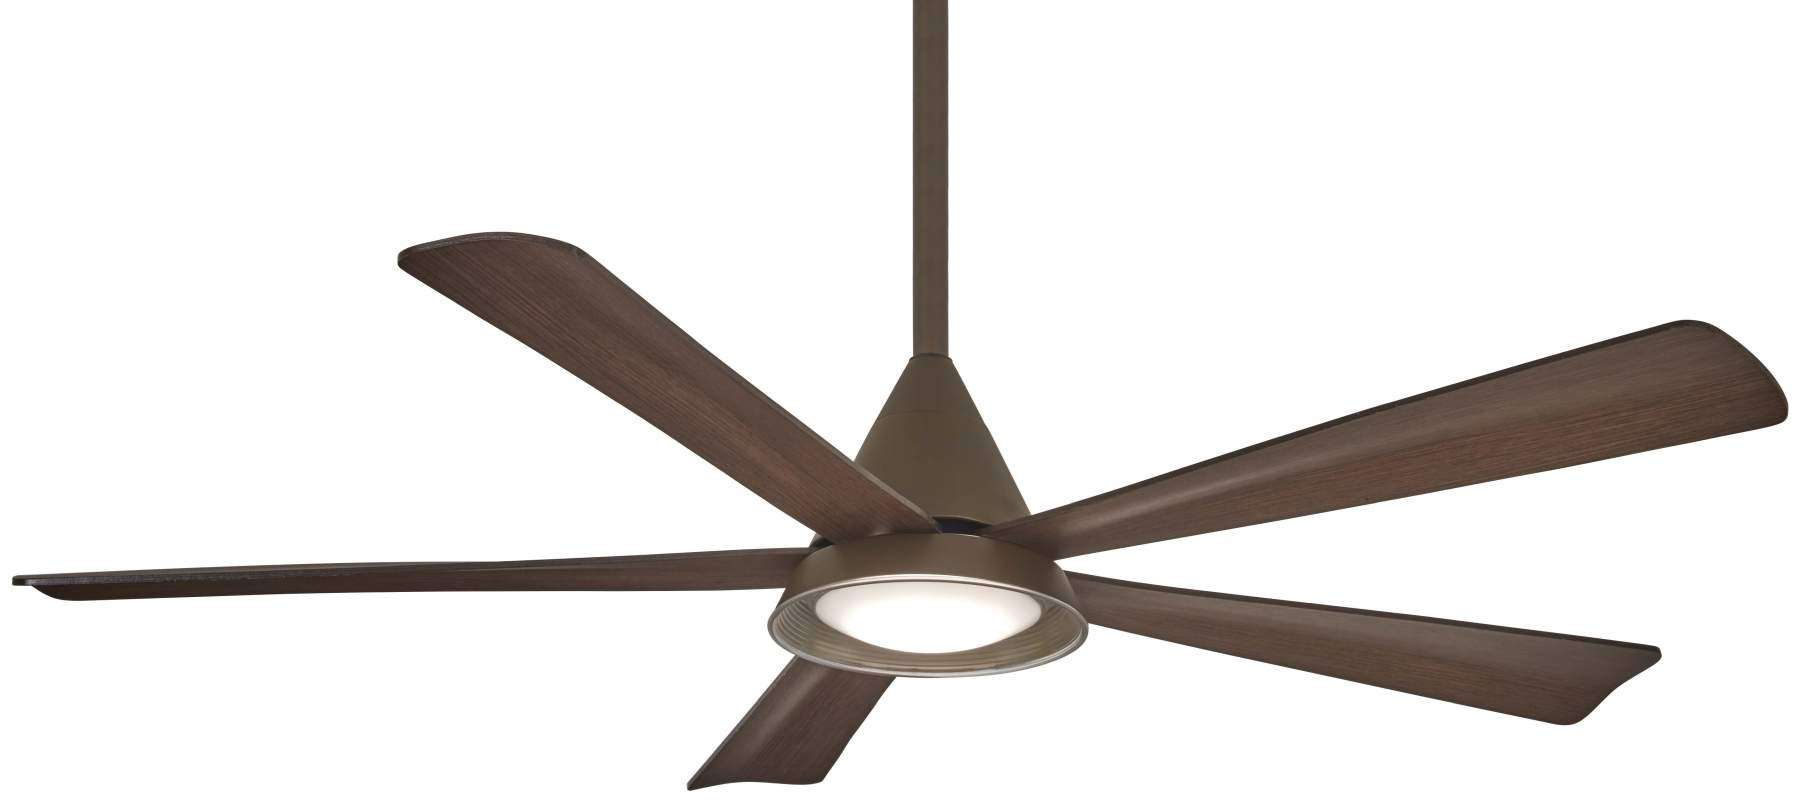 "Cone 54"" LED Ceiling Fan In Oil Rubbed Bronze"